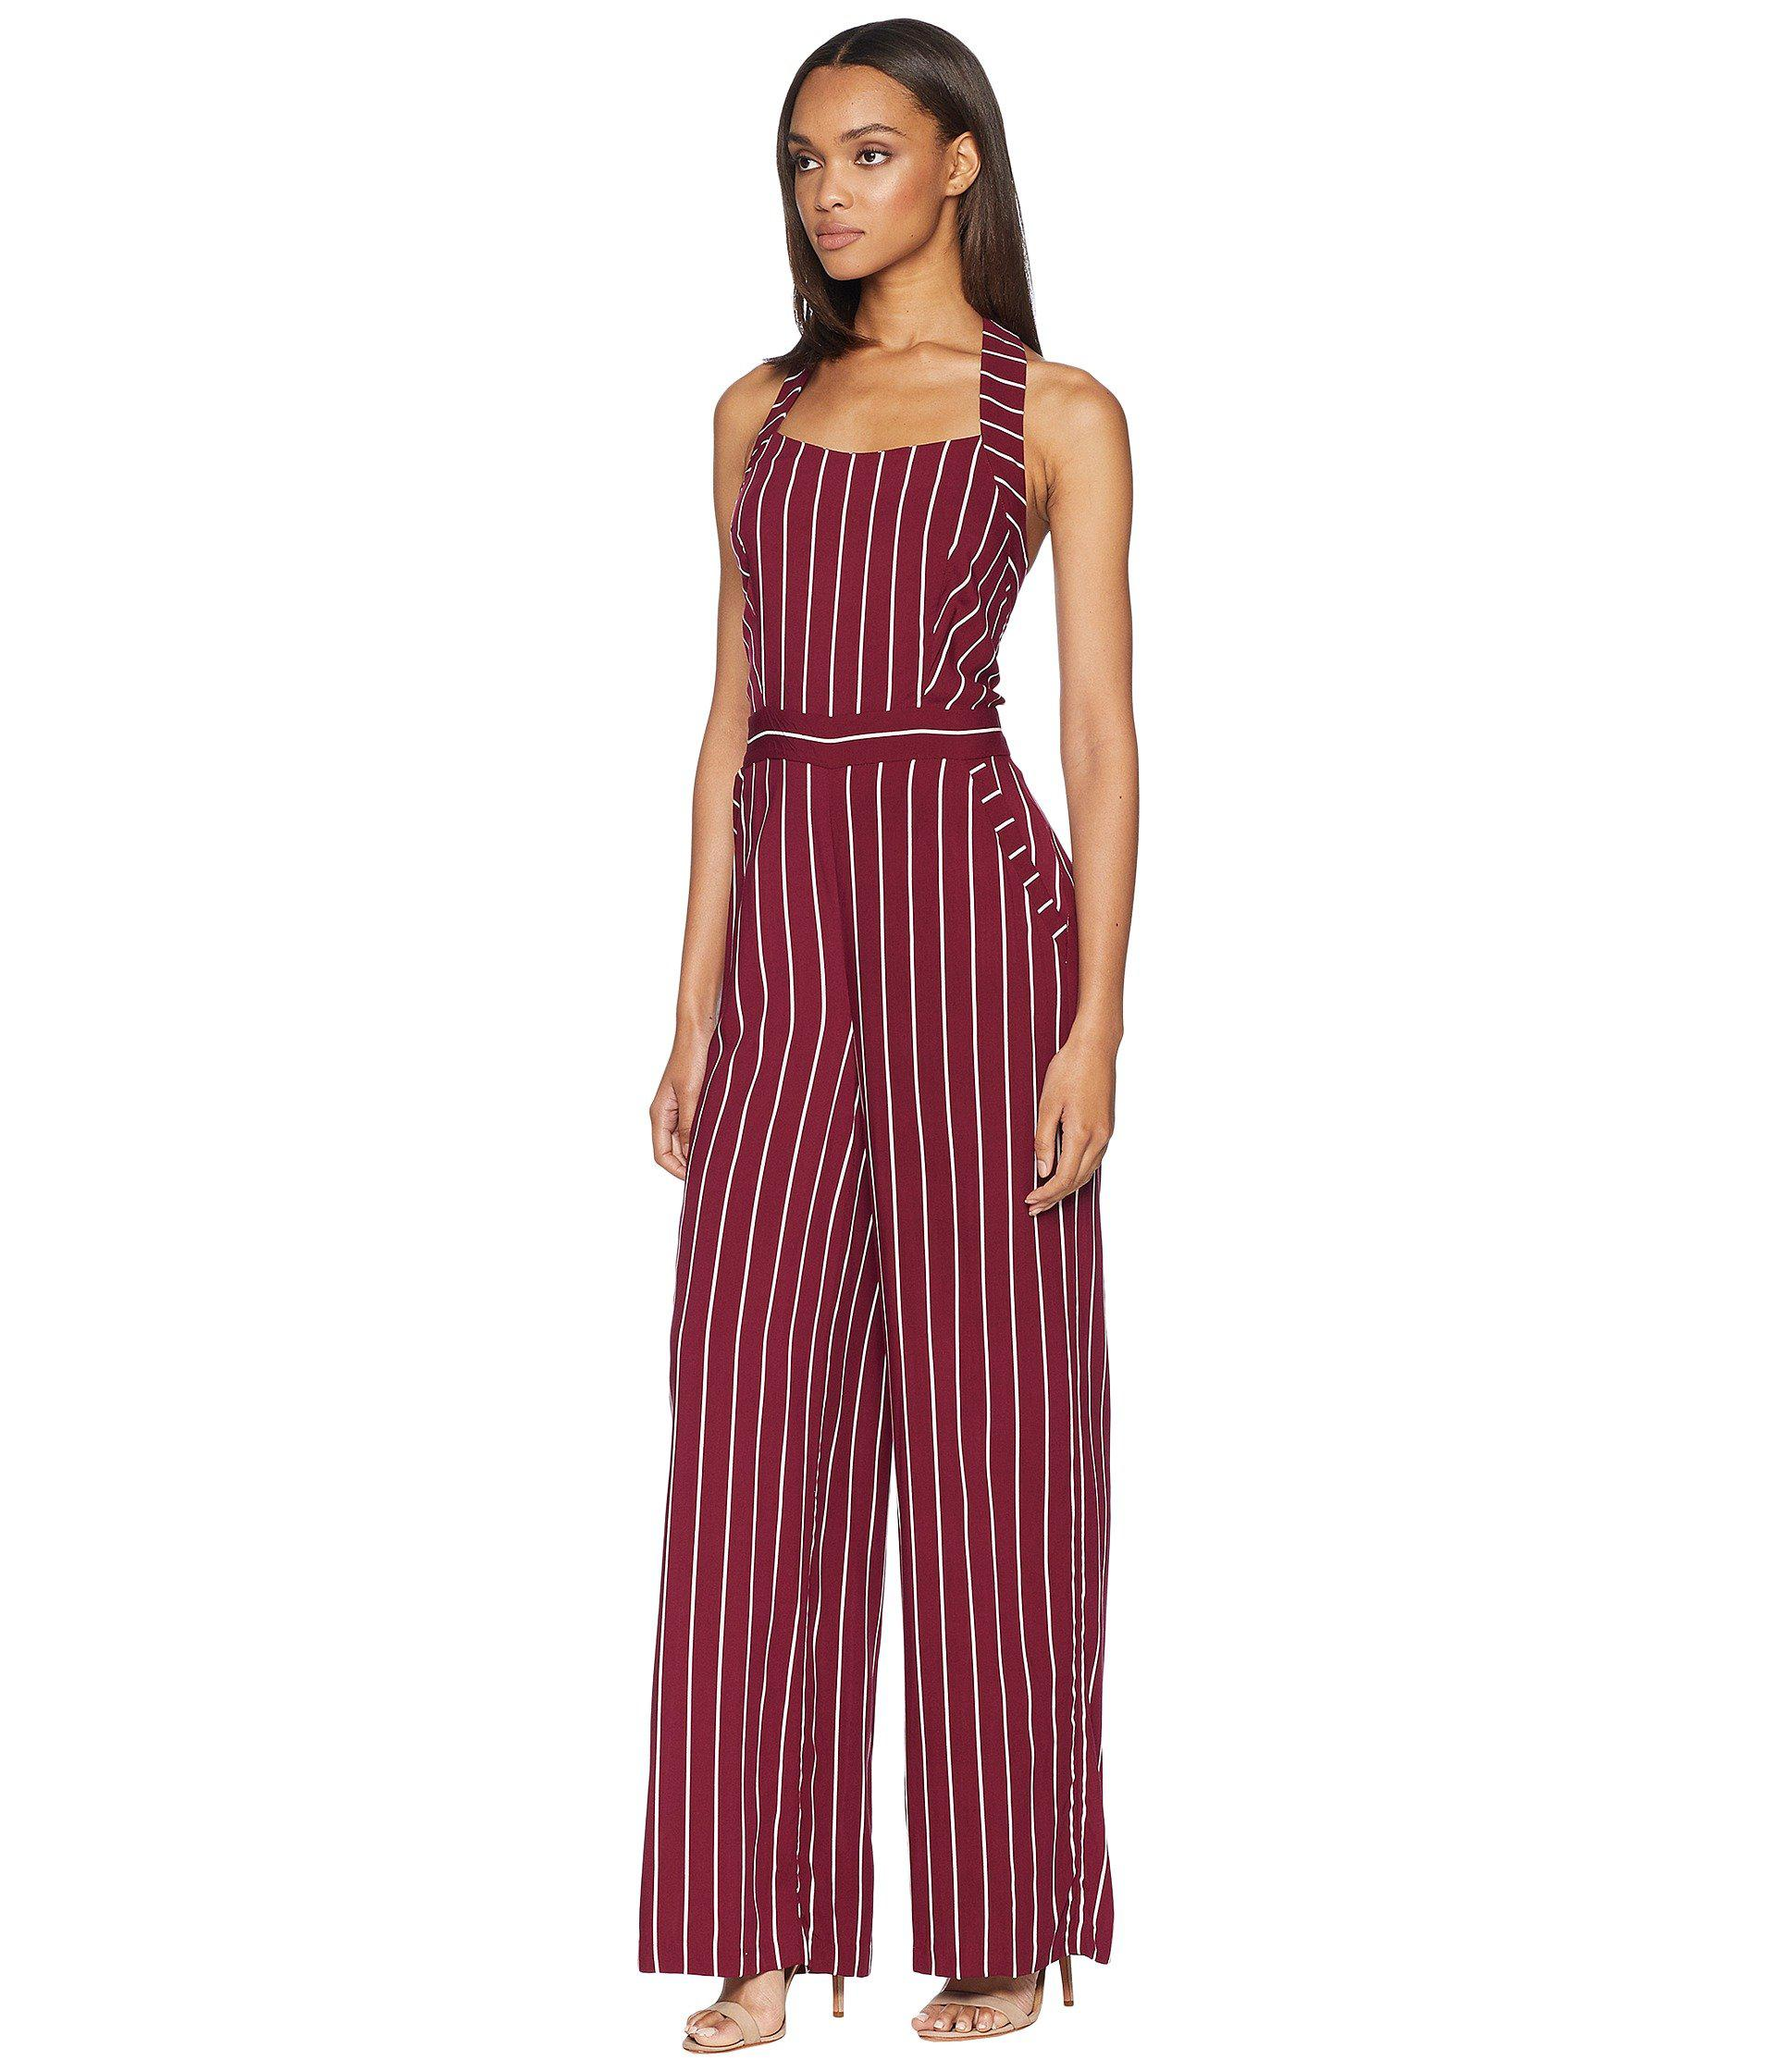 780072a8302 Lyst - Juicy Couture Cindy Stripe Jumpsuit in Red